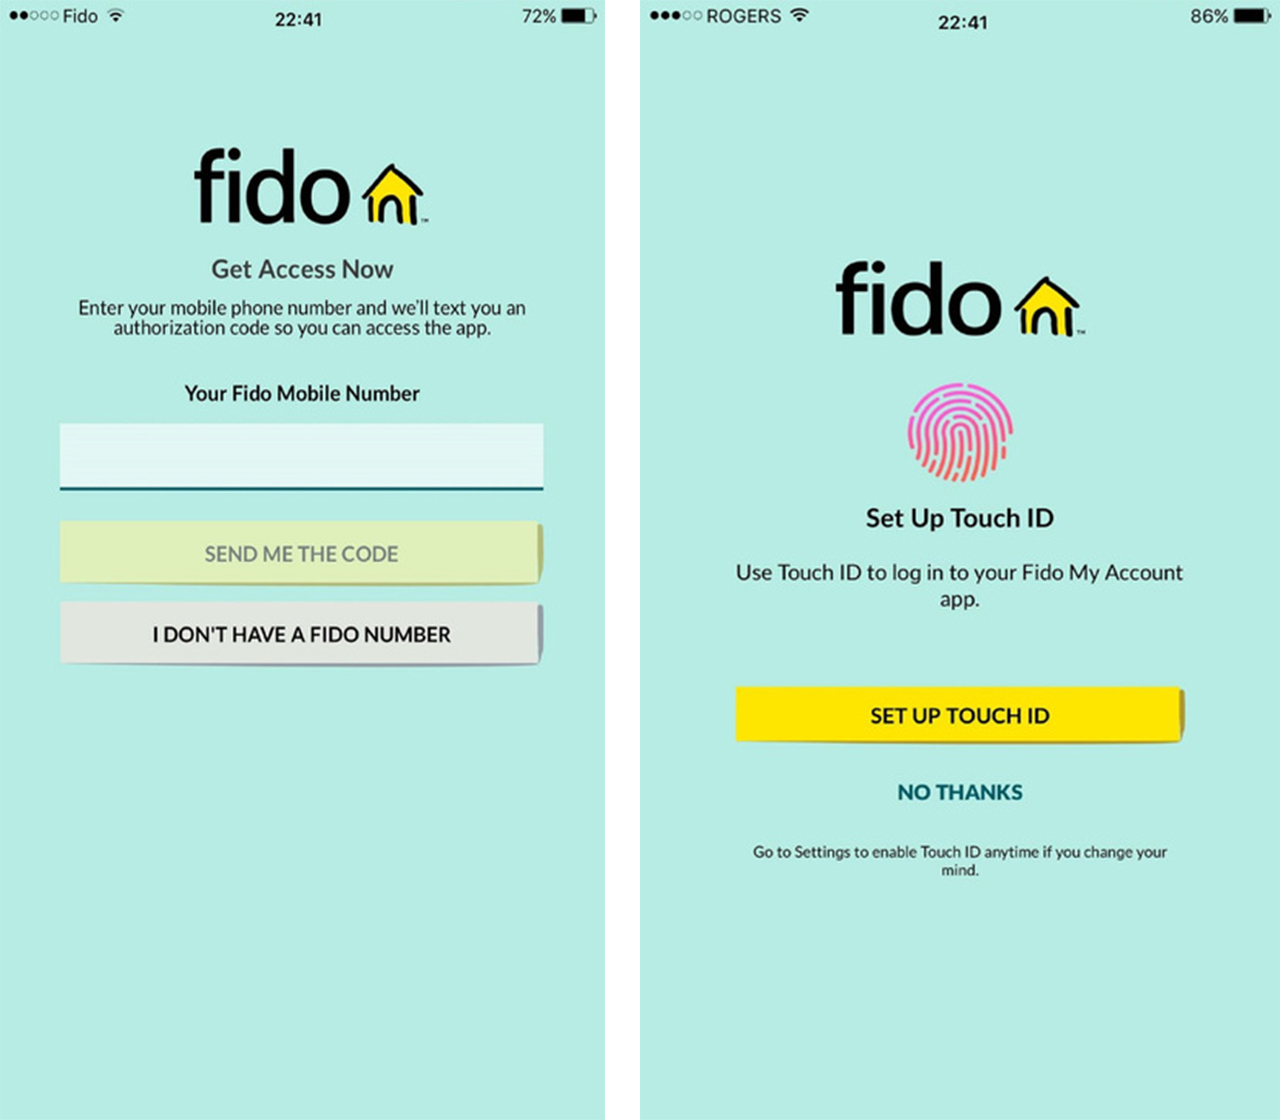 Updated Fido My Account App